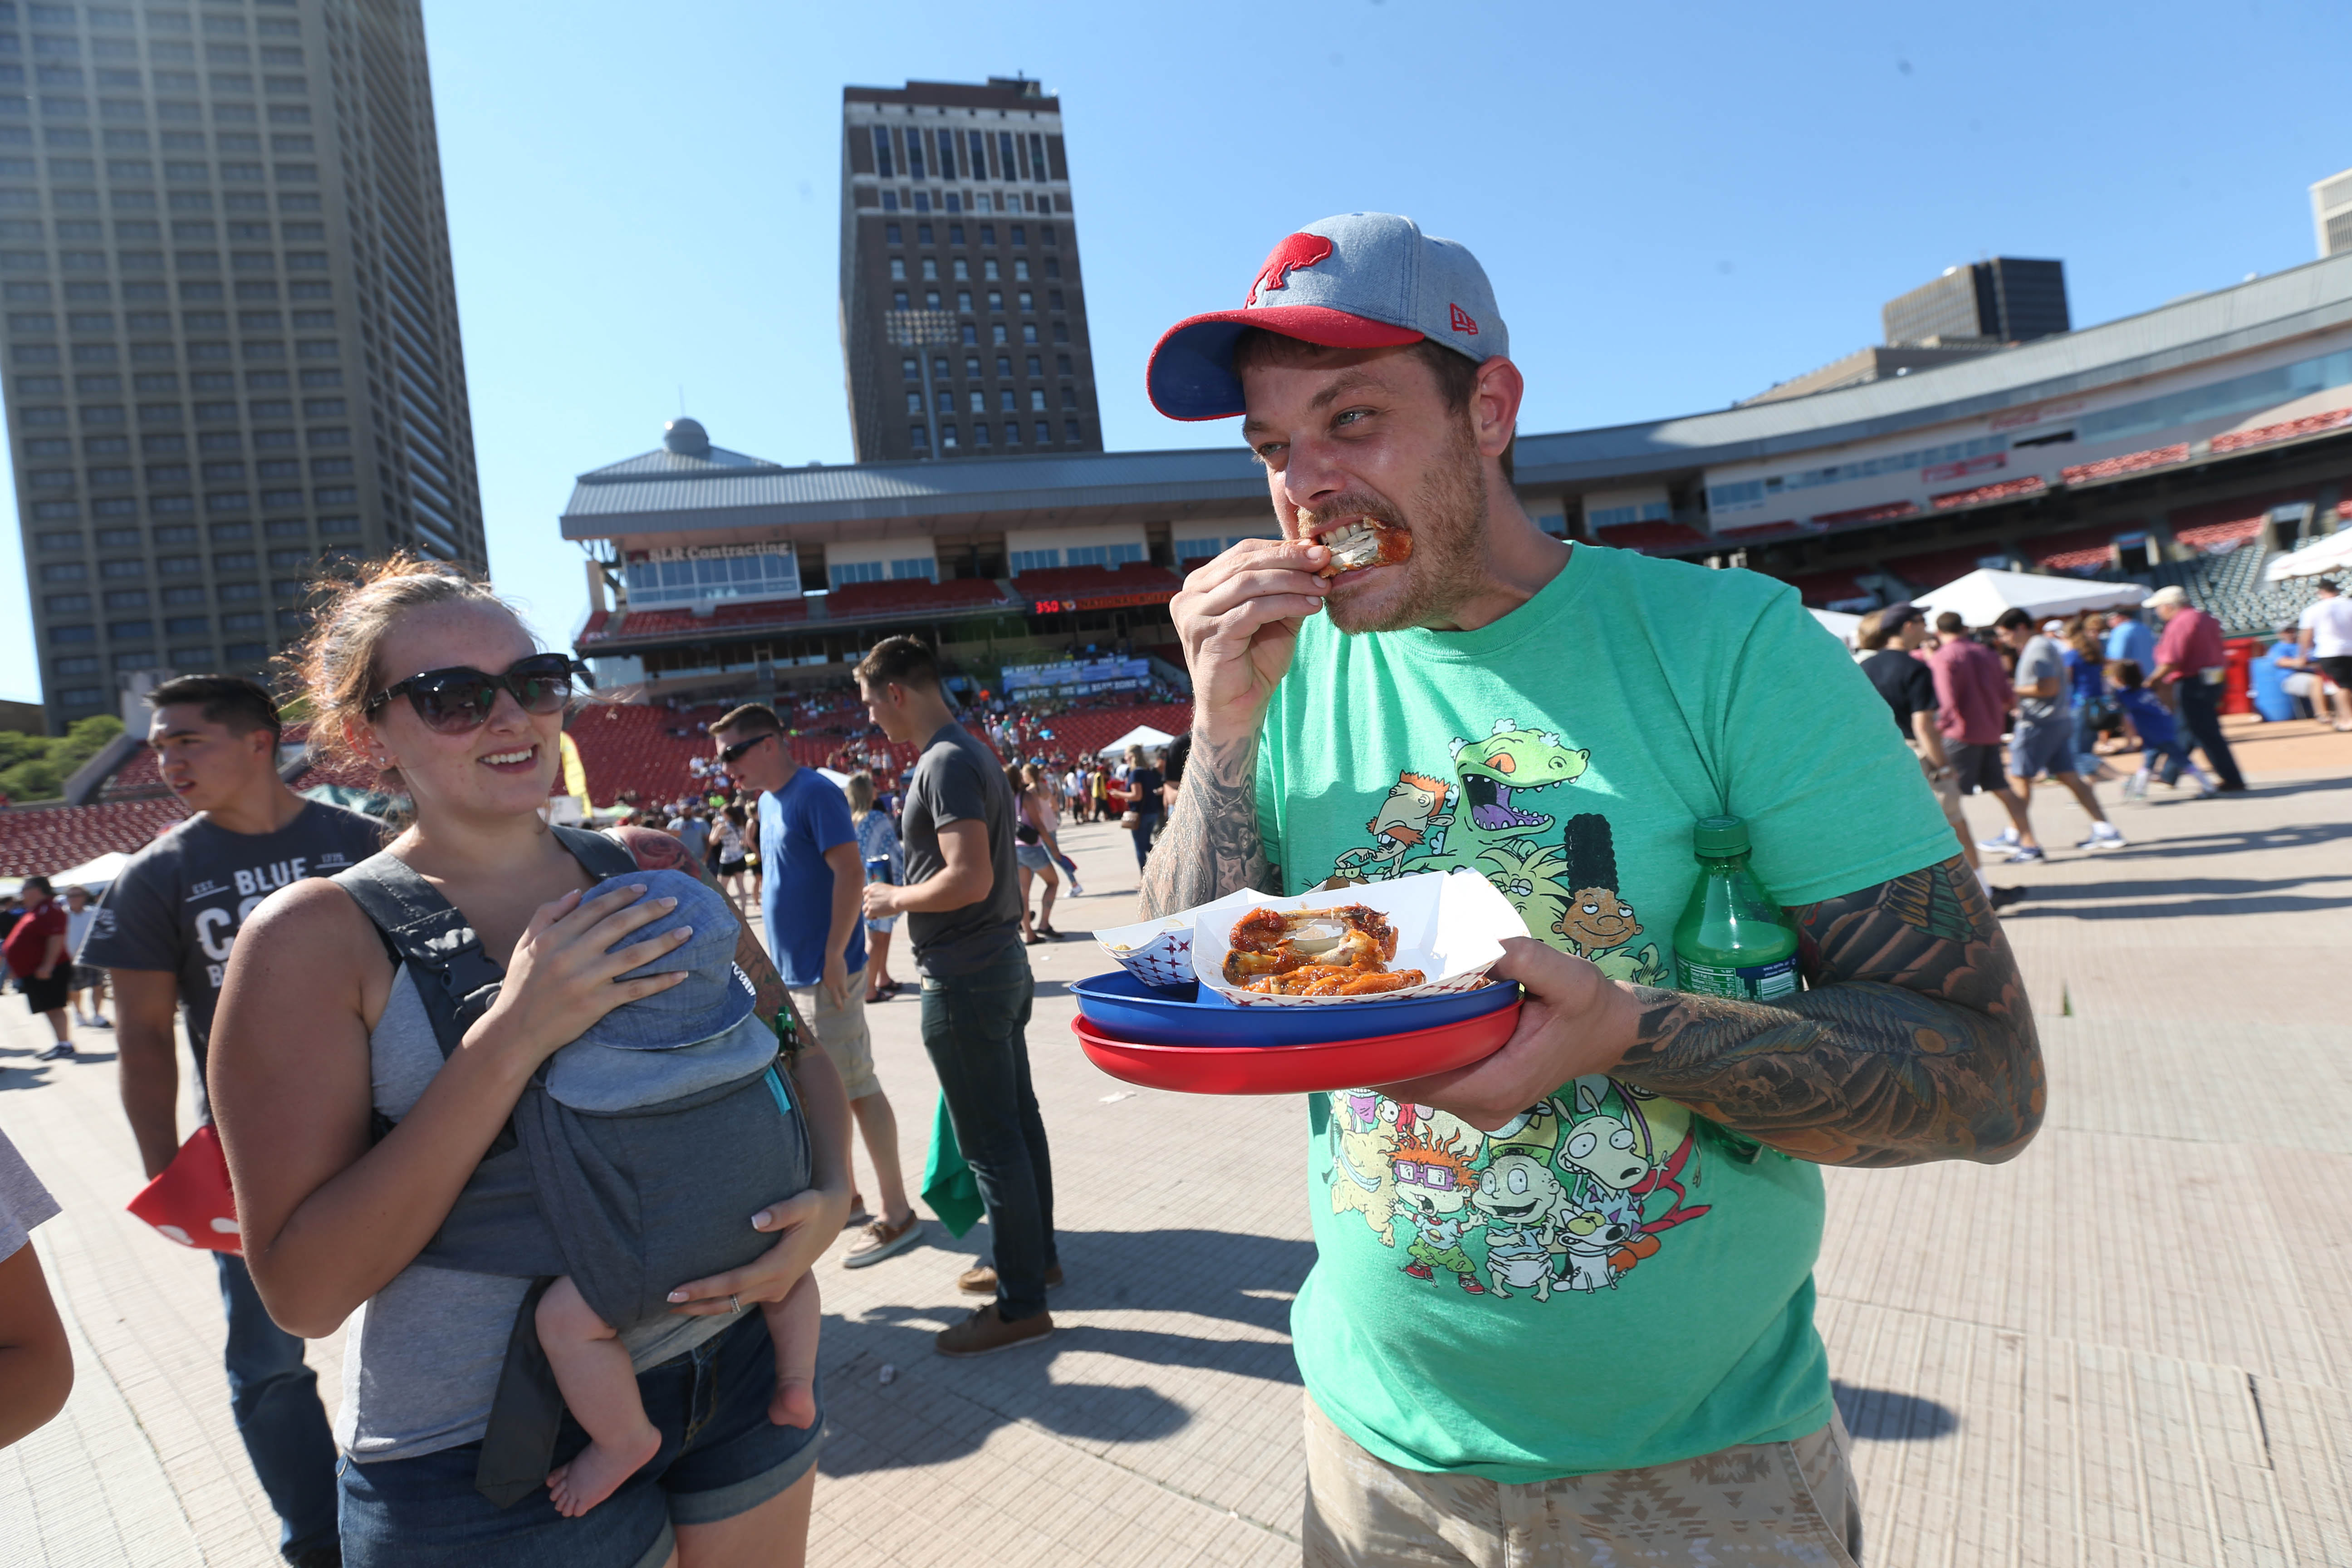 The 15th Annual National Buffalo Wing Festival kicks off, Saturday, Sept. 3, 2016. Rich Straw of South Buffalo munches on some wings as his girlfriend Jessie Hitman, left, holds their son Richard Straw Jr., 6 weeks, probably the youngest attendee at the festival. (Sharon Cantillon/Buffalo News)